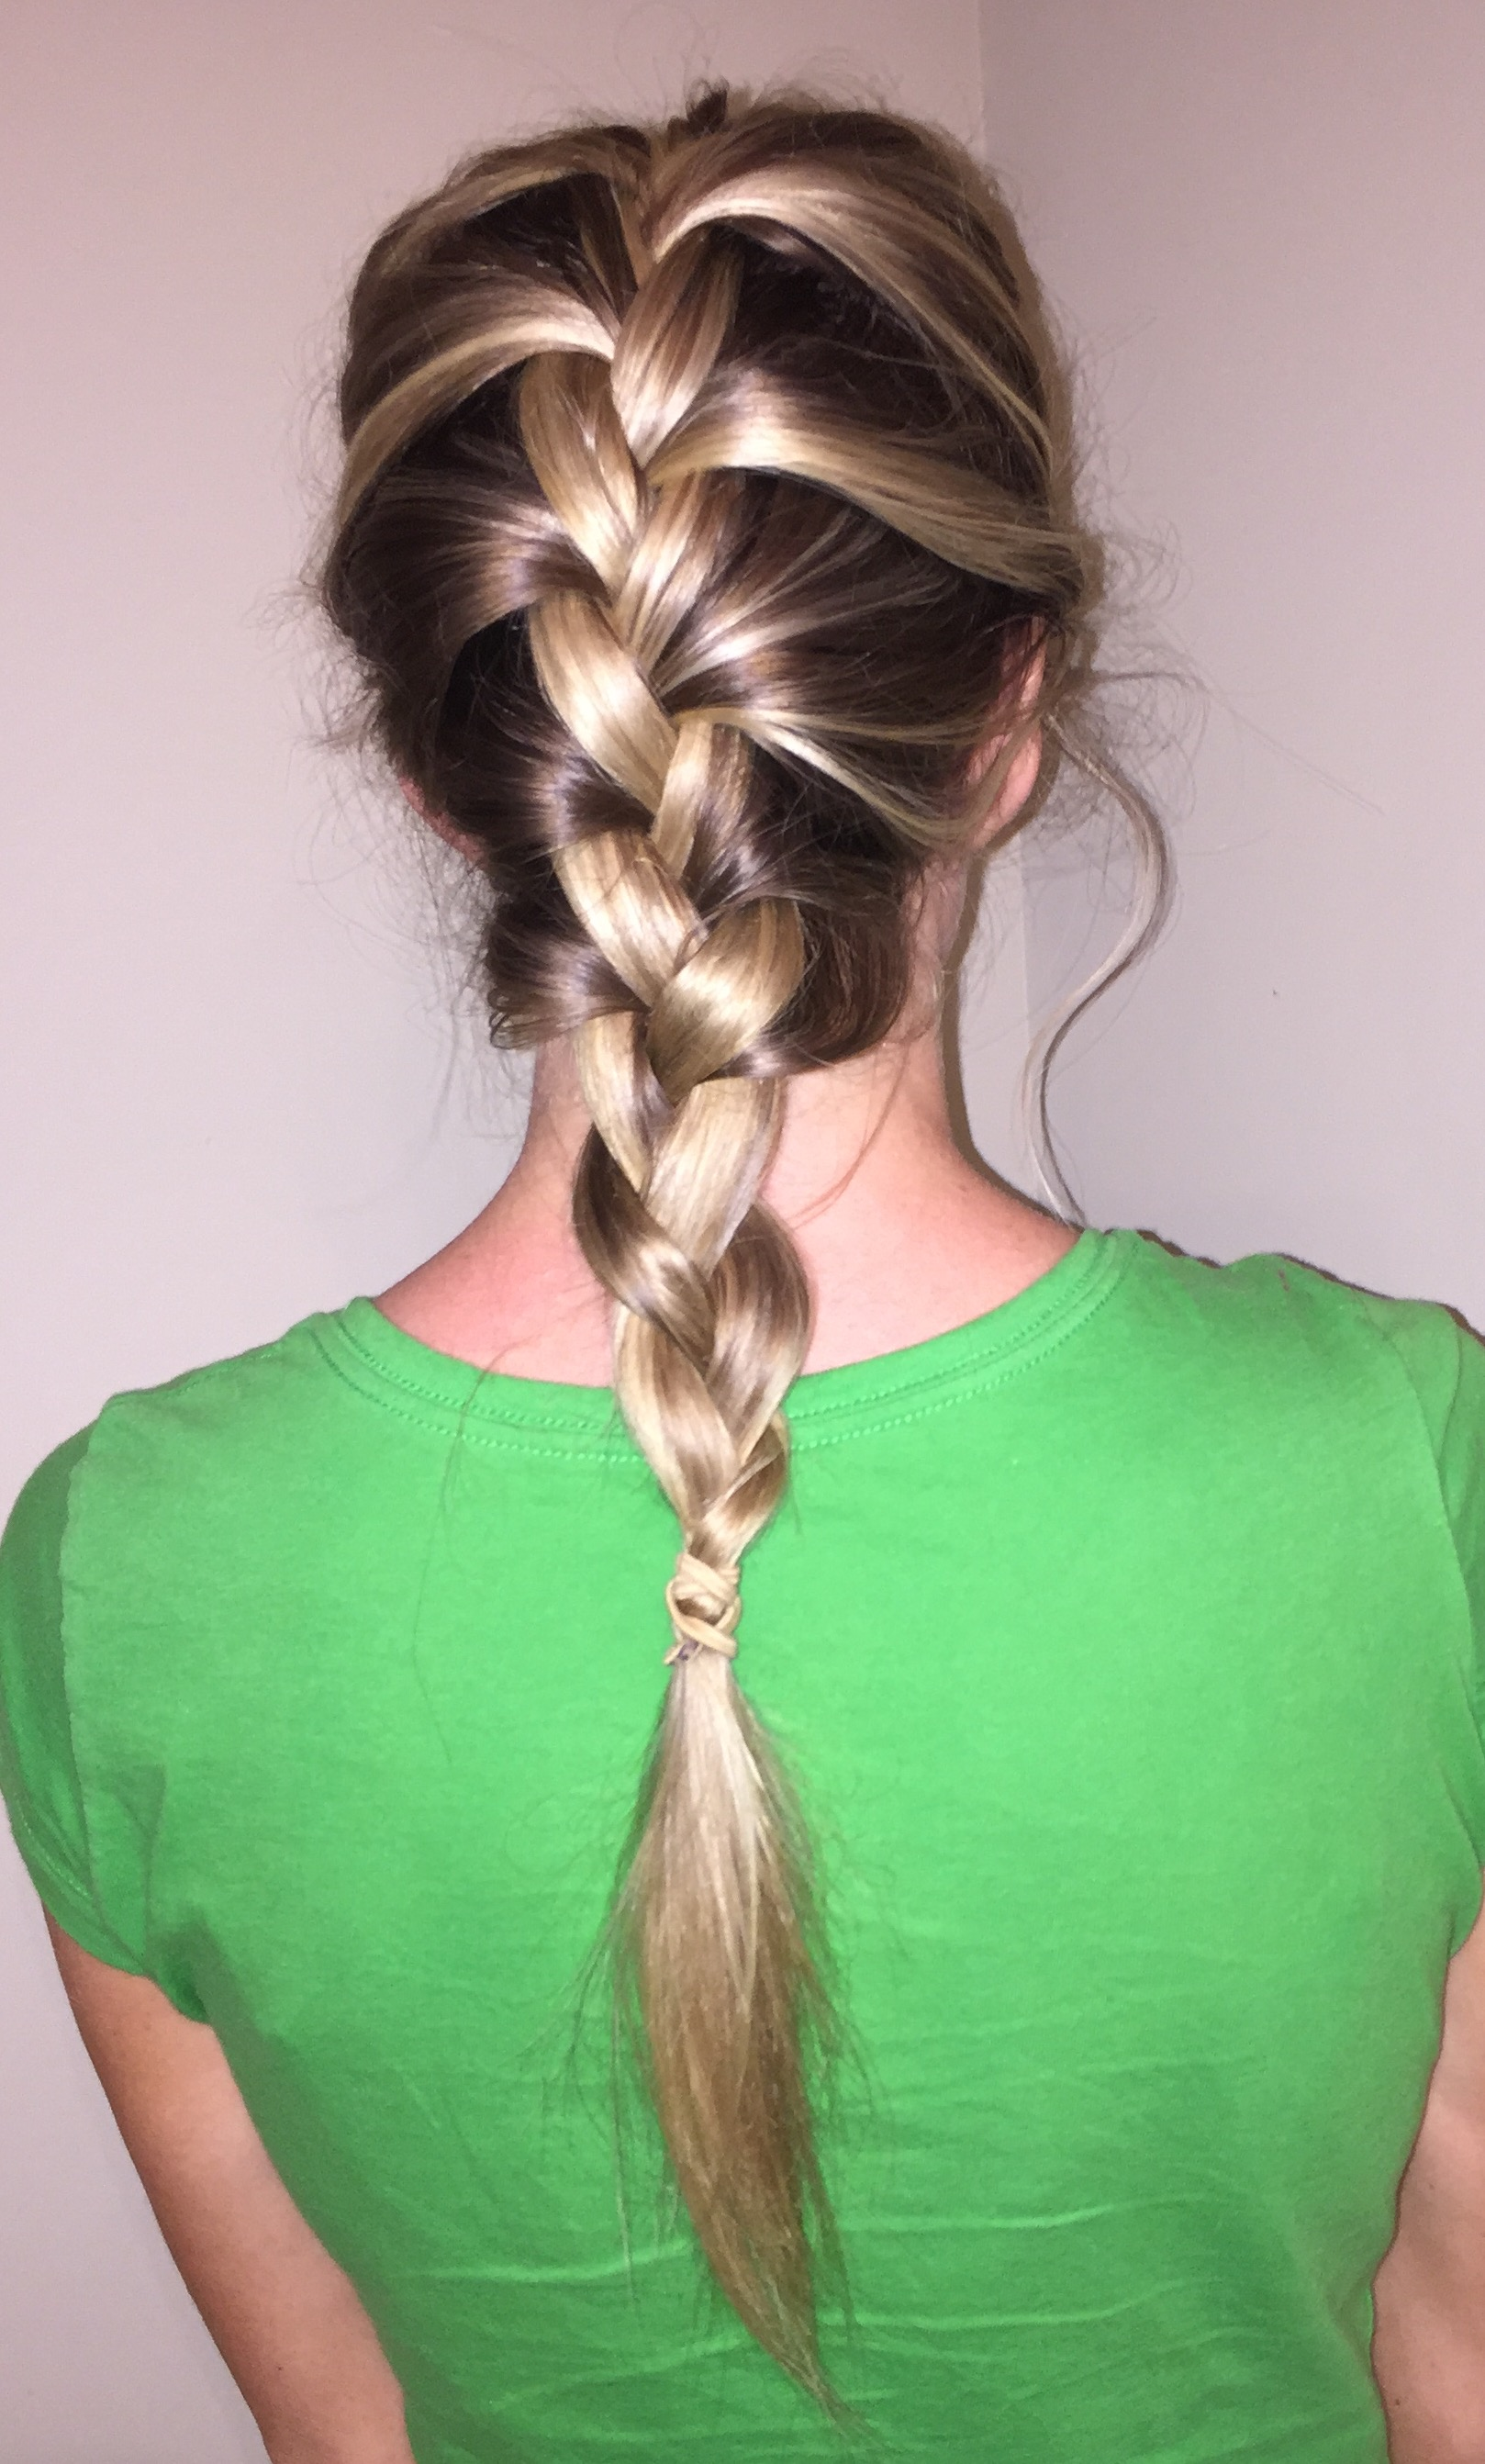 French Braid How To: Tight